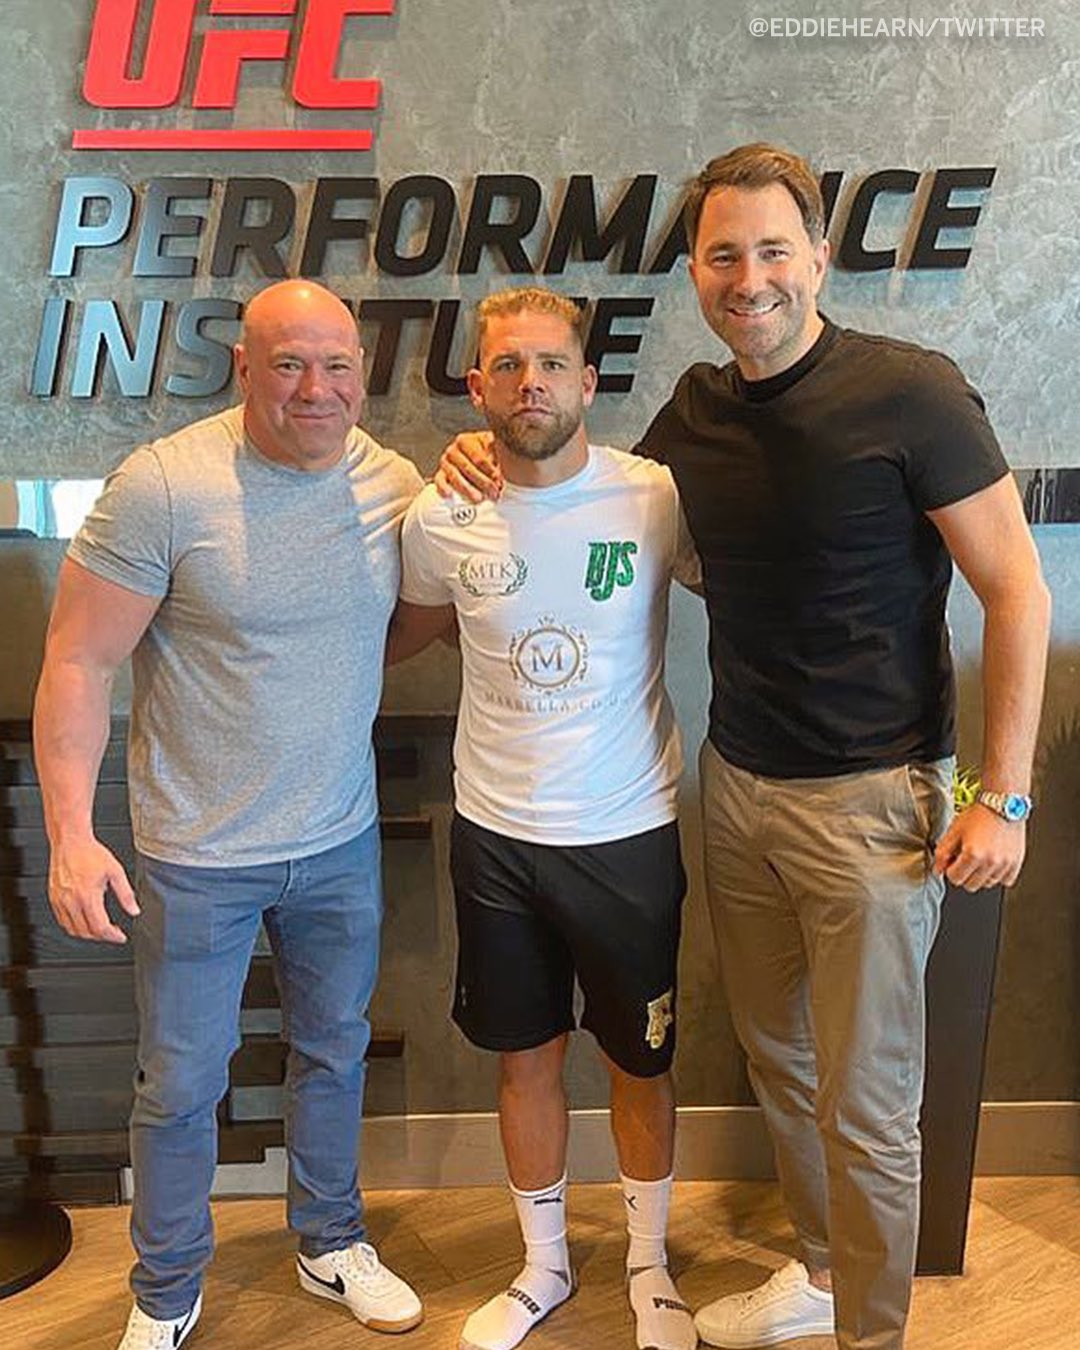 Eddie Hearn Visits Canelo & Billy Joe Saunders Ahead of May 8th Bout | Boxen247.com